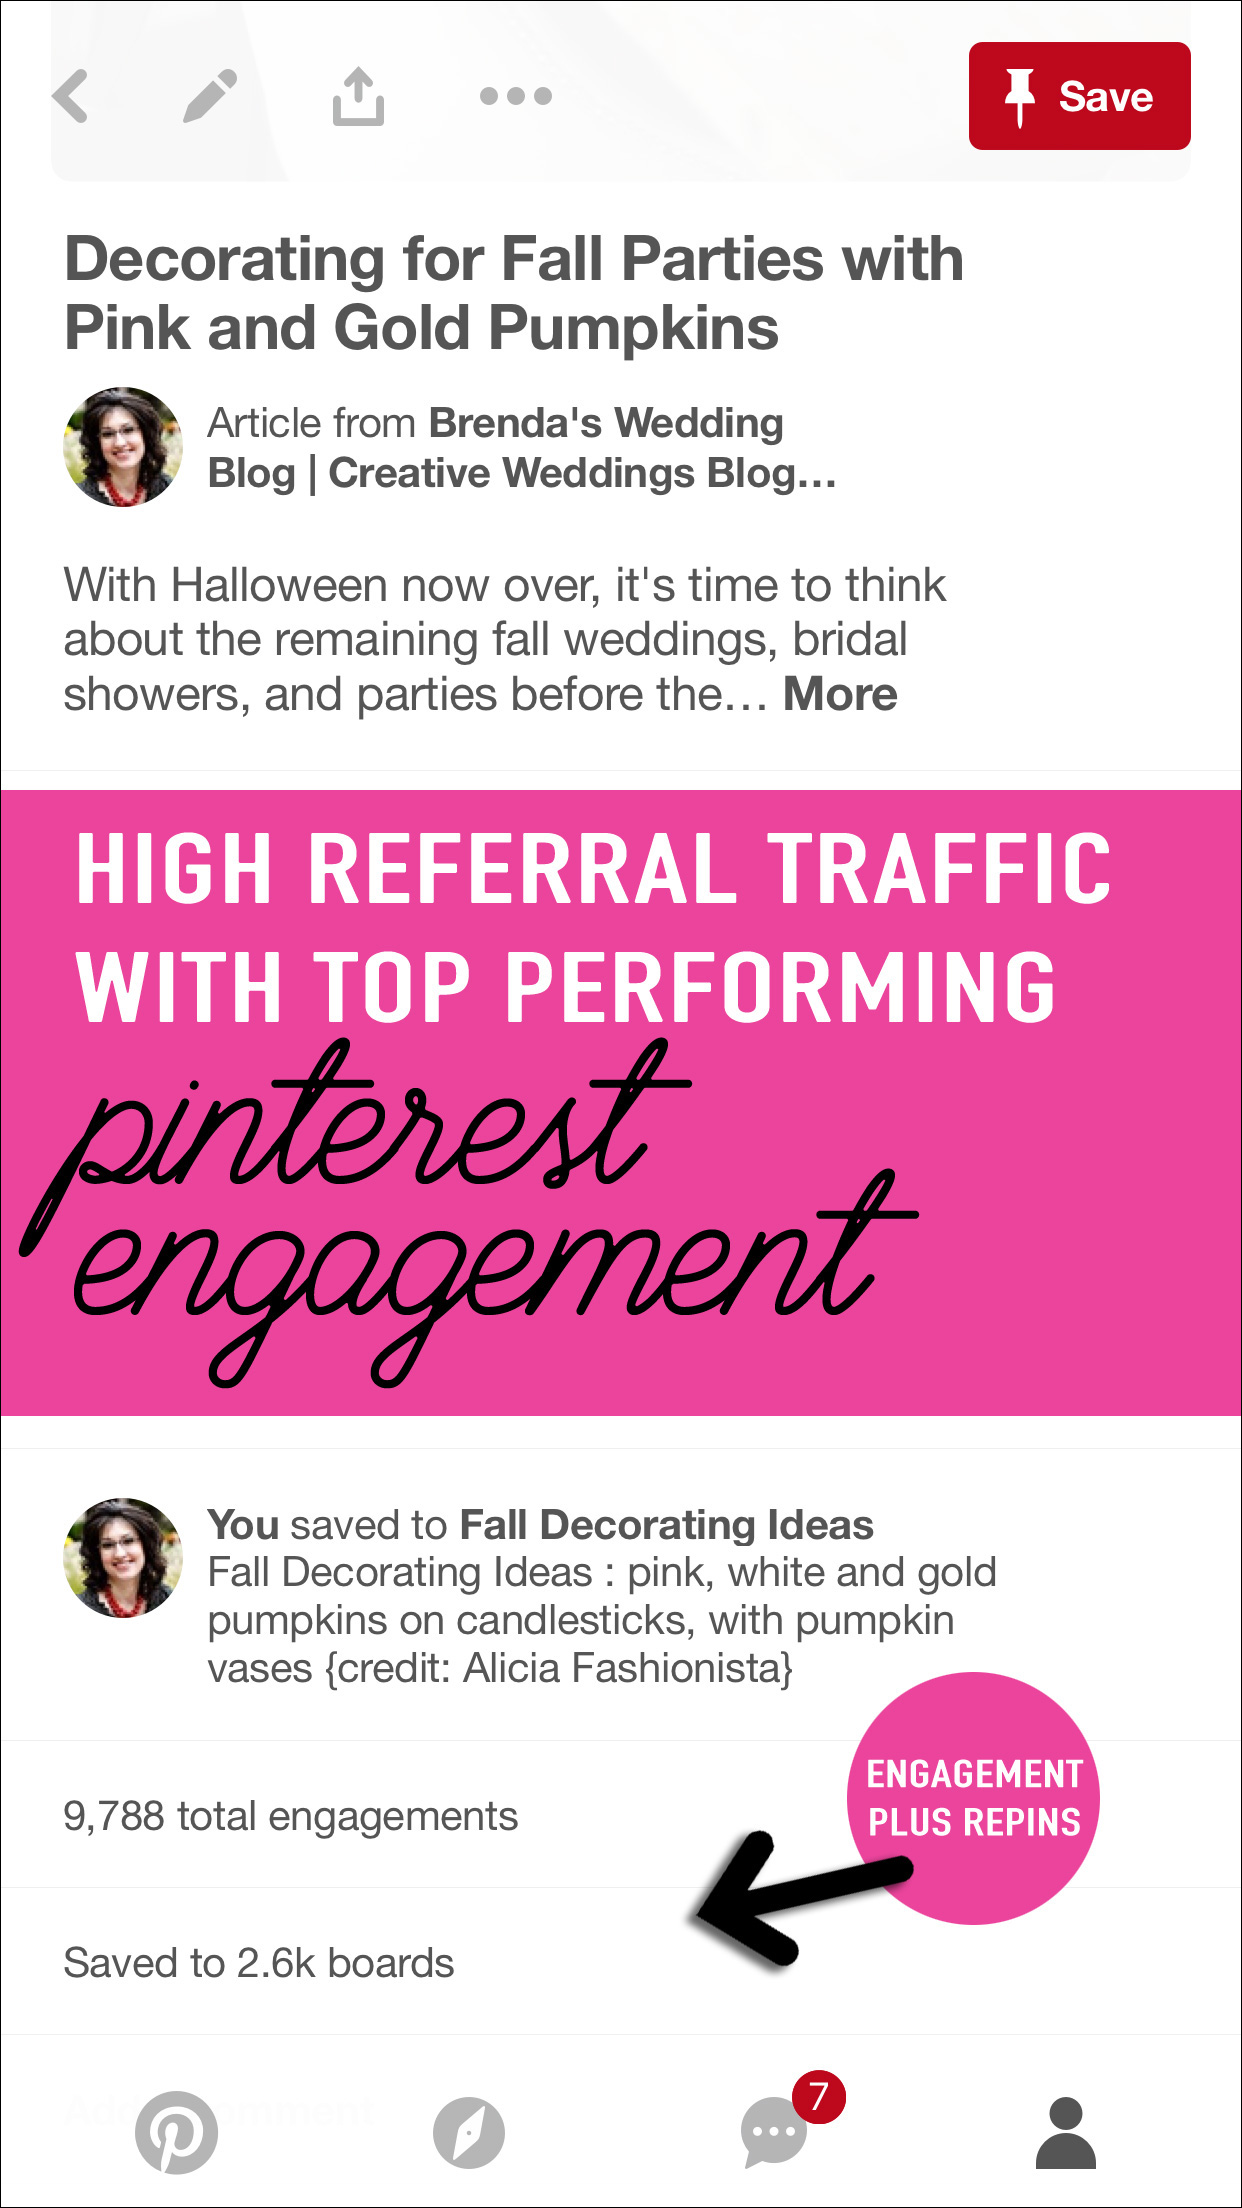 Your Most Popular Pin of the Week will show you high referral traffic with your top performing pins. High Pinterest engagement means more traffic to your blog, website and/or shop and more sales from Pinterest. See more on www.BrendasWeddingBlog.com